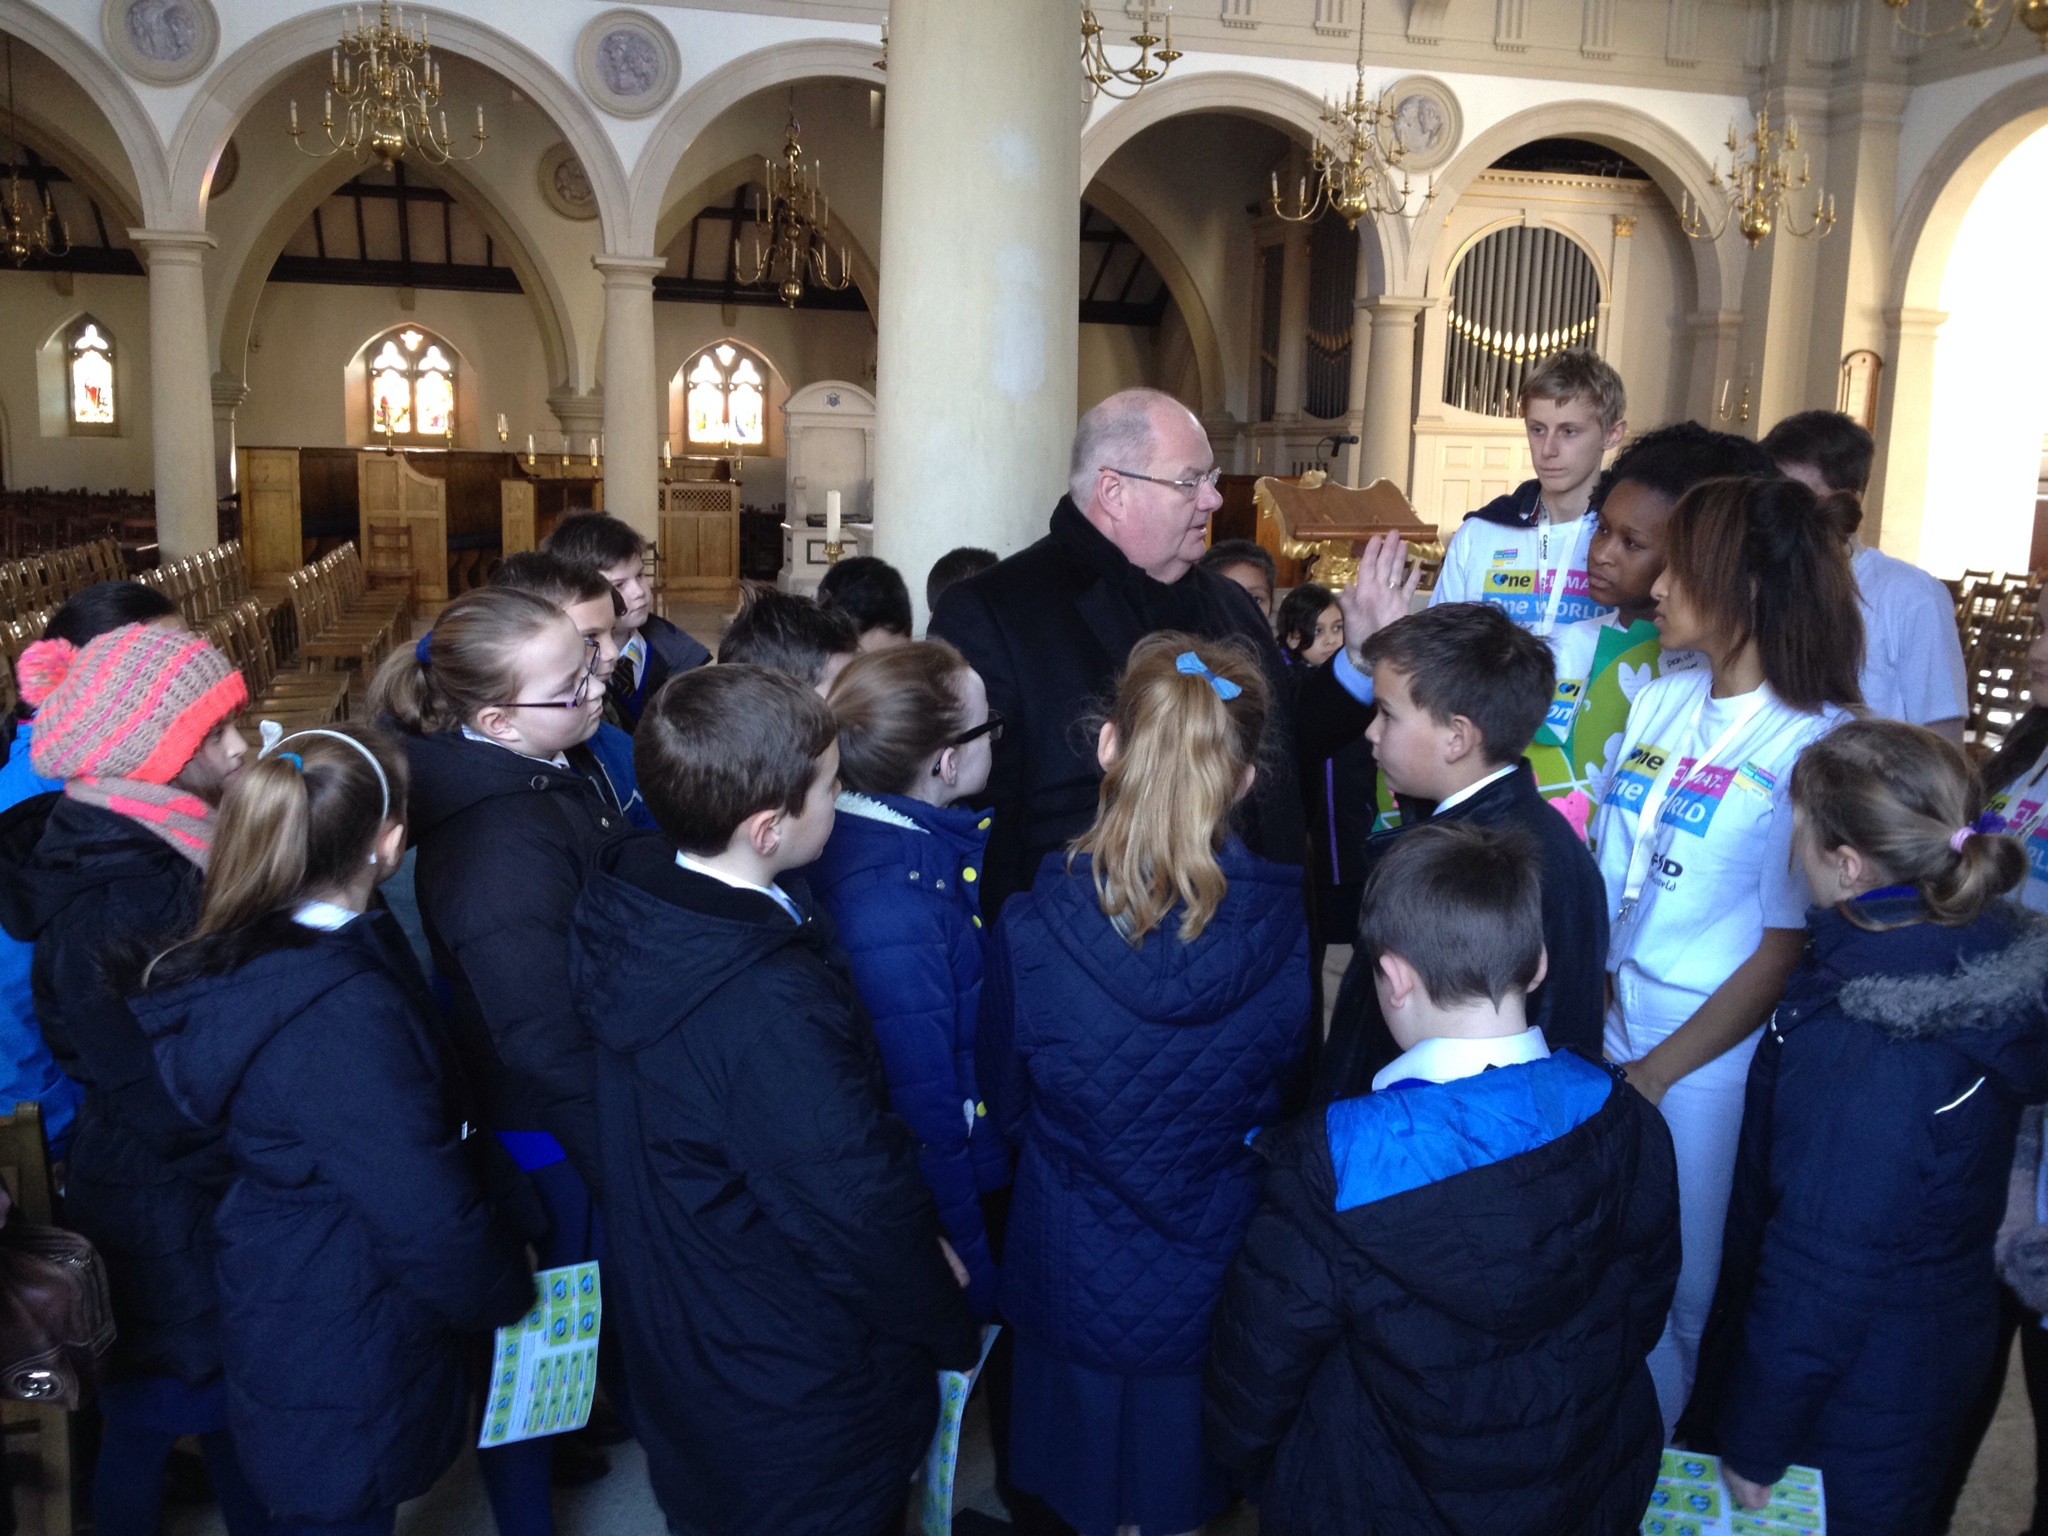 Eric Pickles MP answering questions on climate change from young CAFOD supporters at Brentwood Cathedral